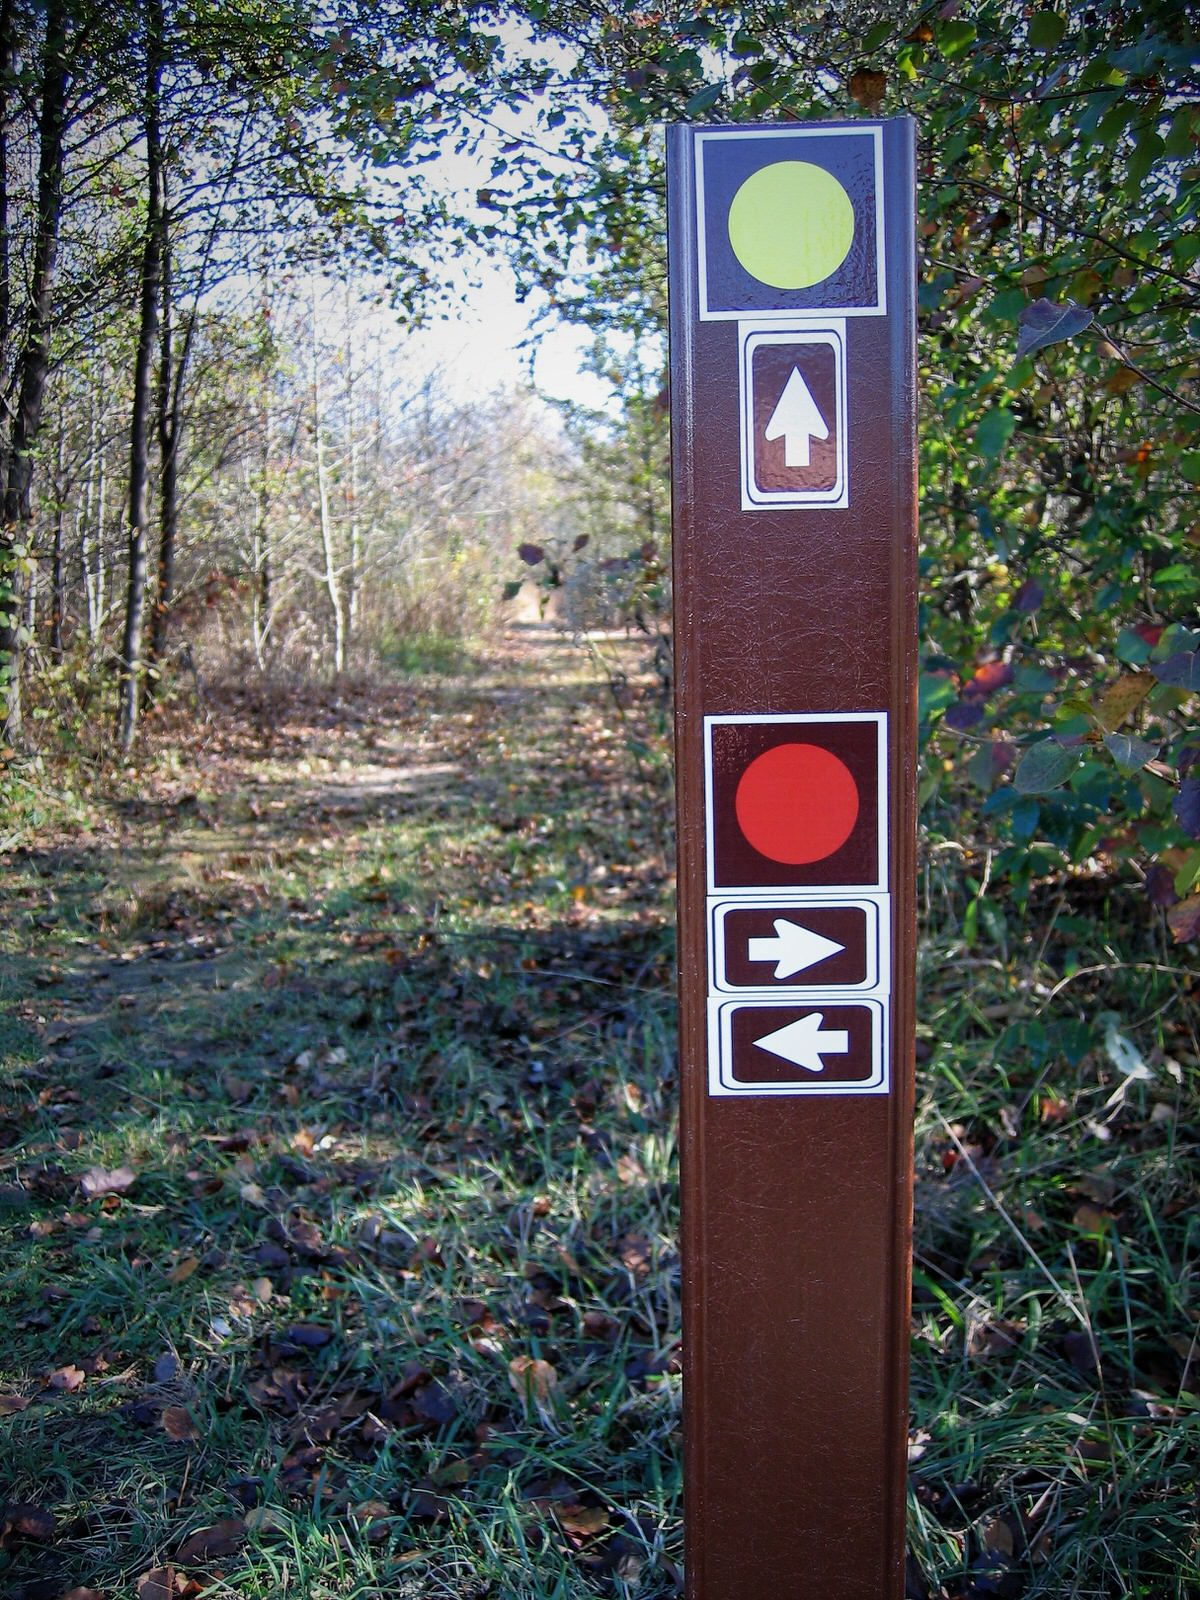 photo: All trail intersections are marked and correspond to the trail map shown on kiosks at 2 main trailheads, and on the CH website. Photo by Lew Gorman III.